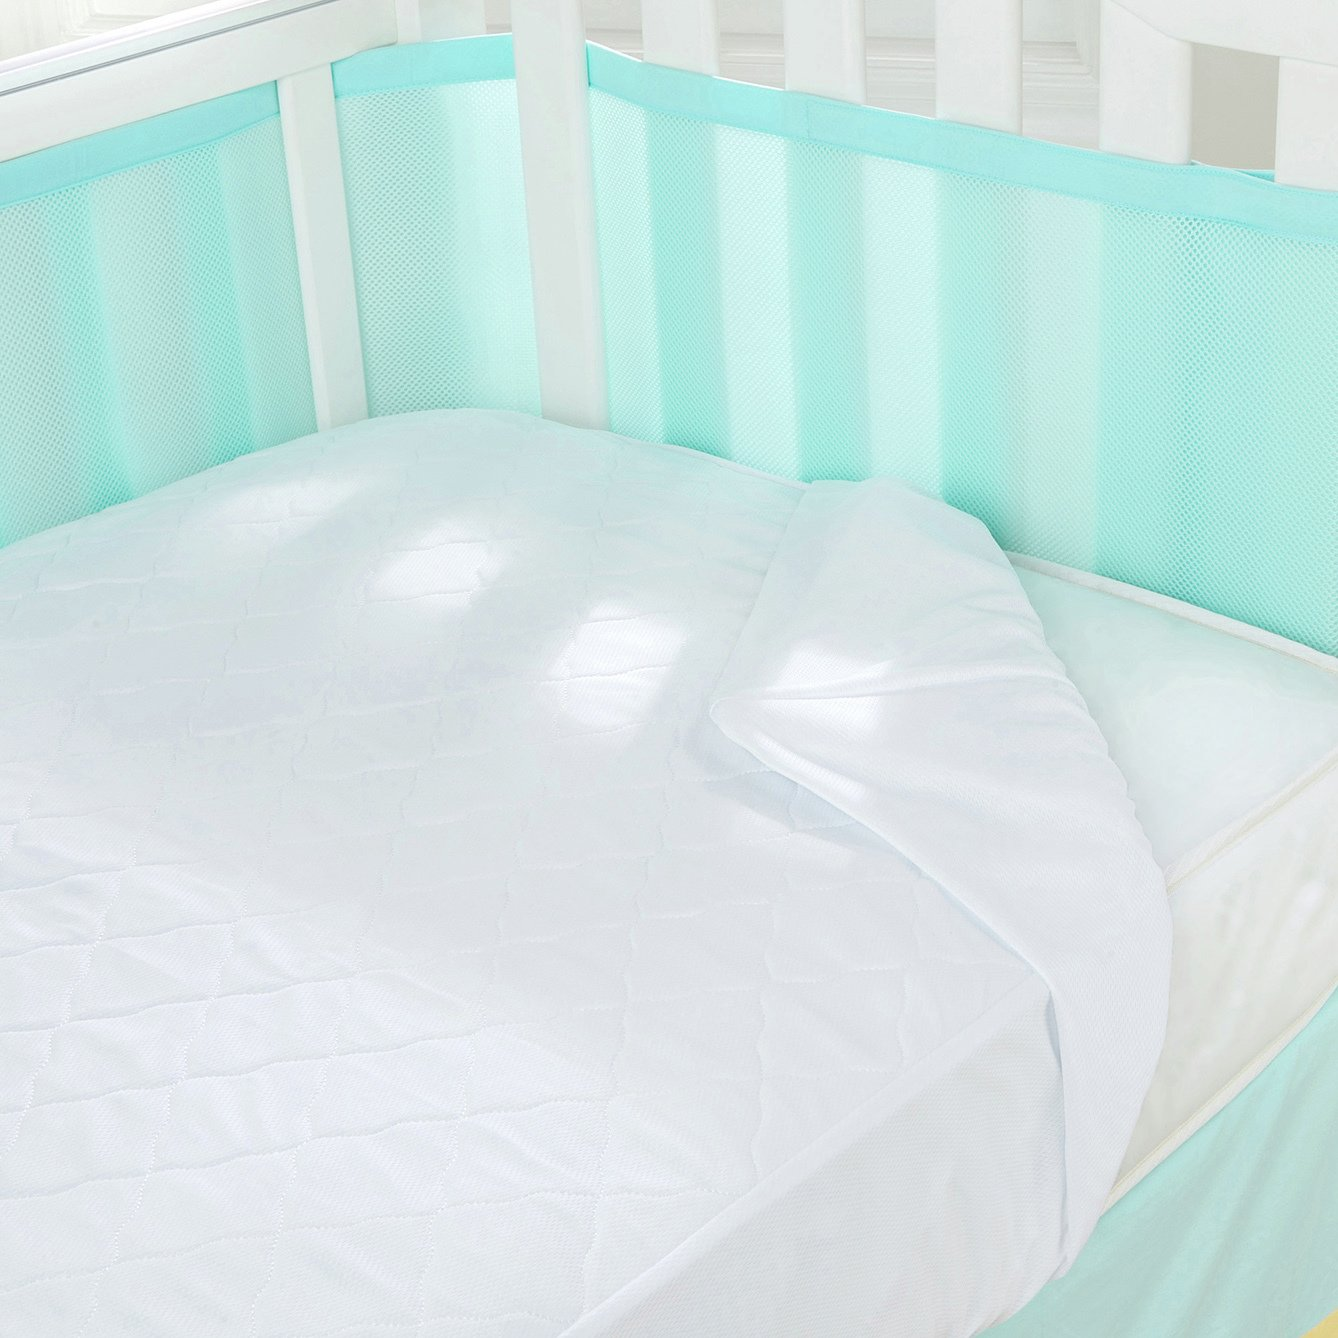 Image of BreathableBaby 3-in-1 Fitted Mattress Pad.